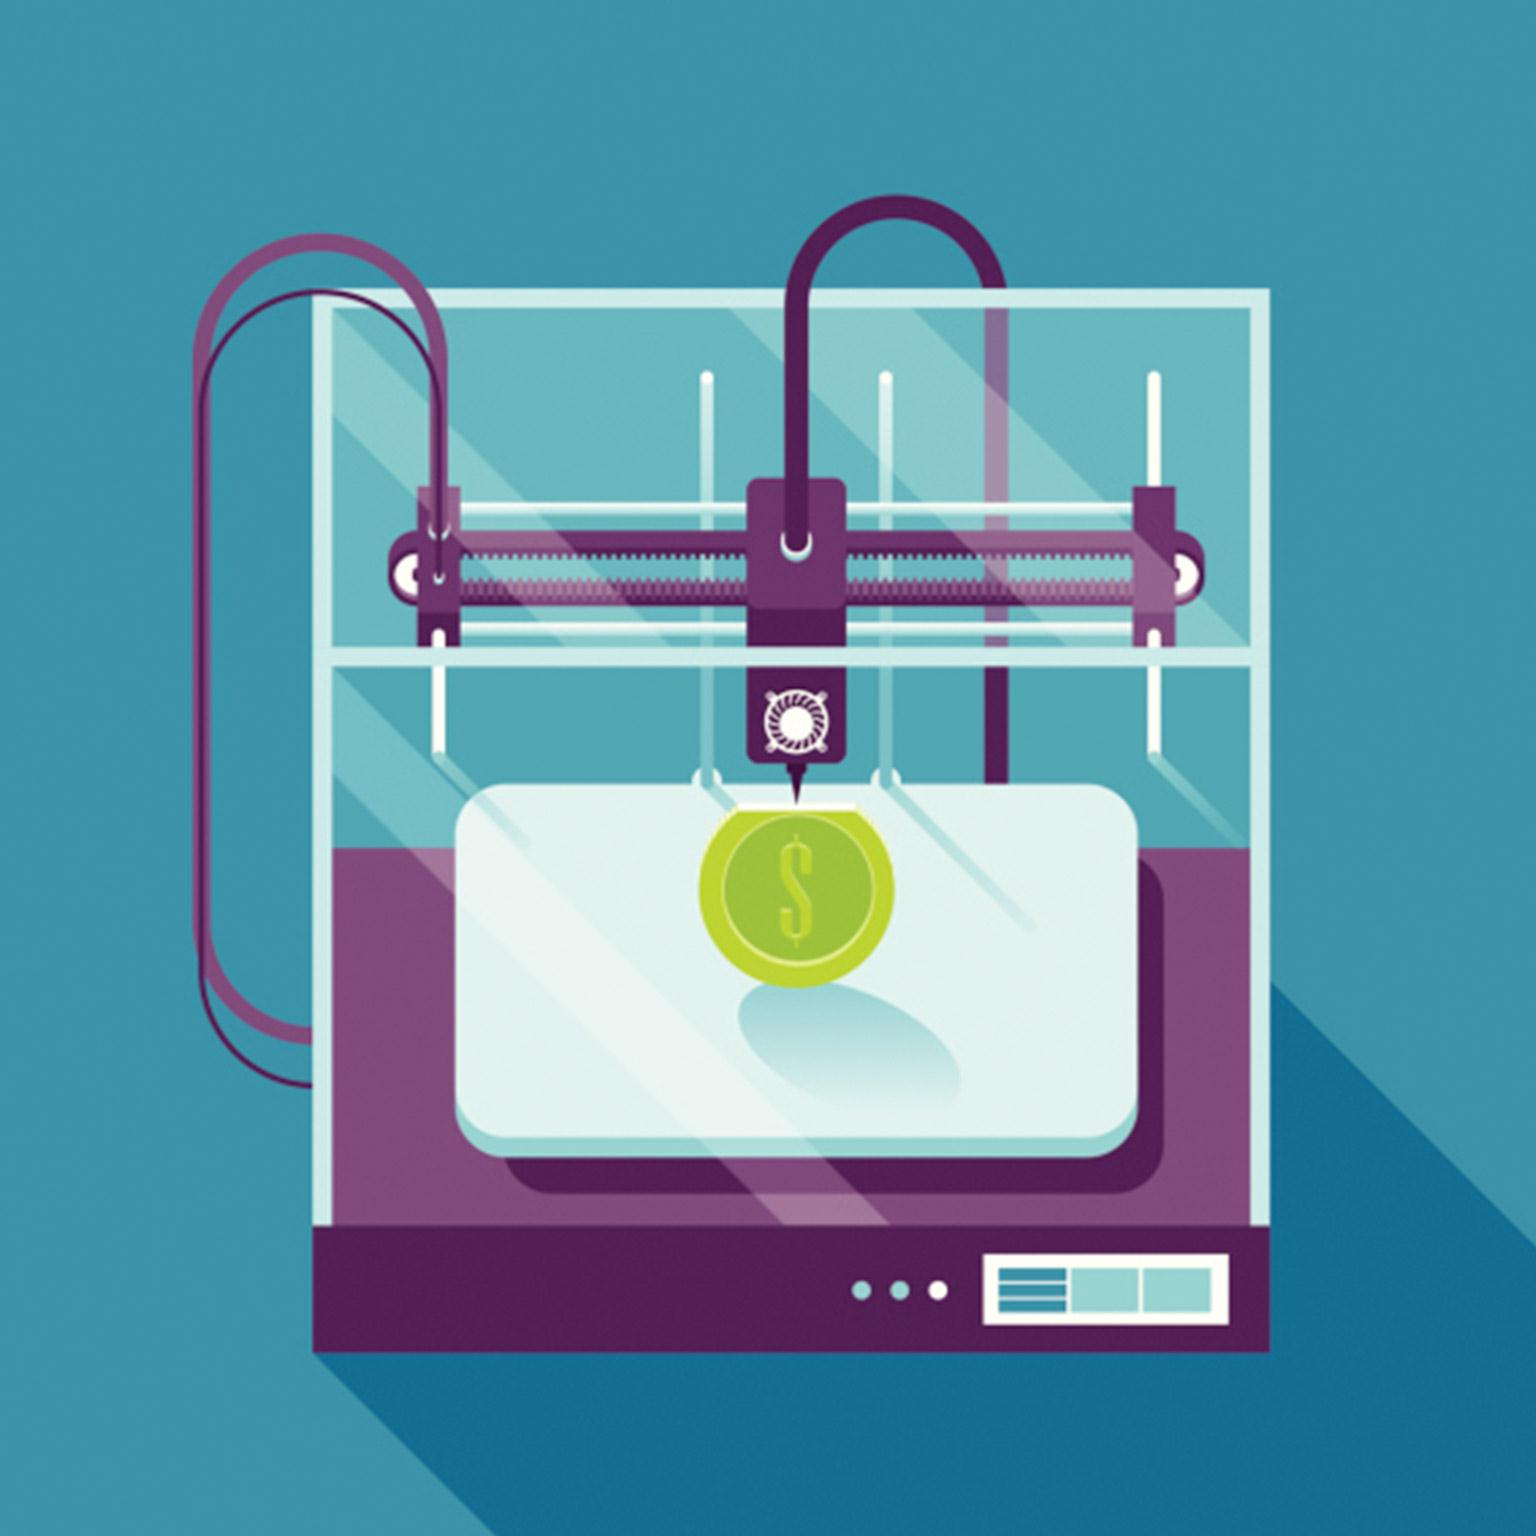 Are you ready for 3-D printing?